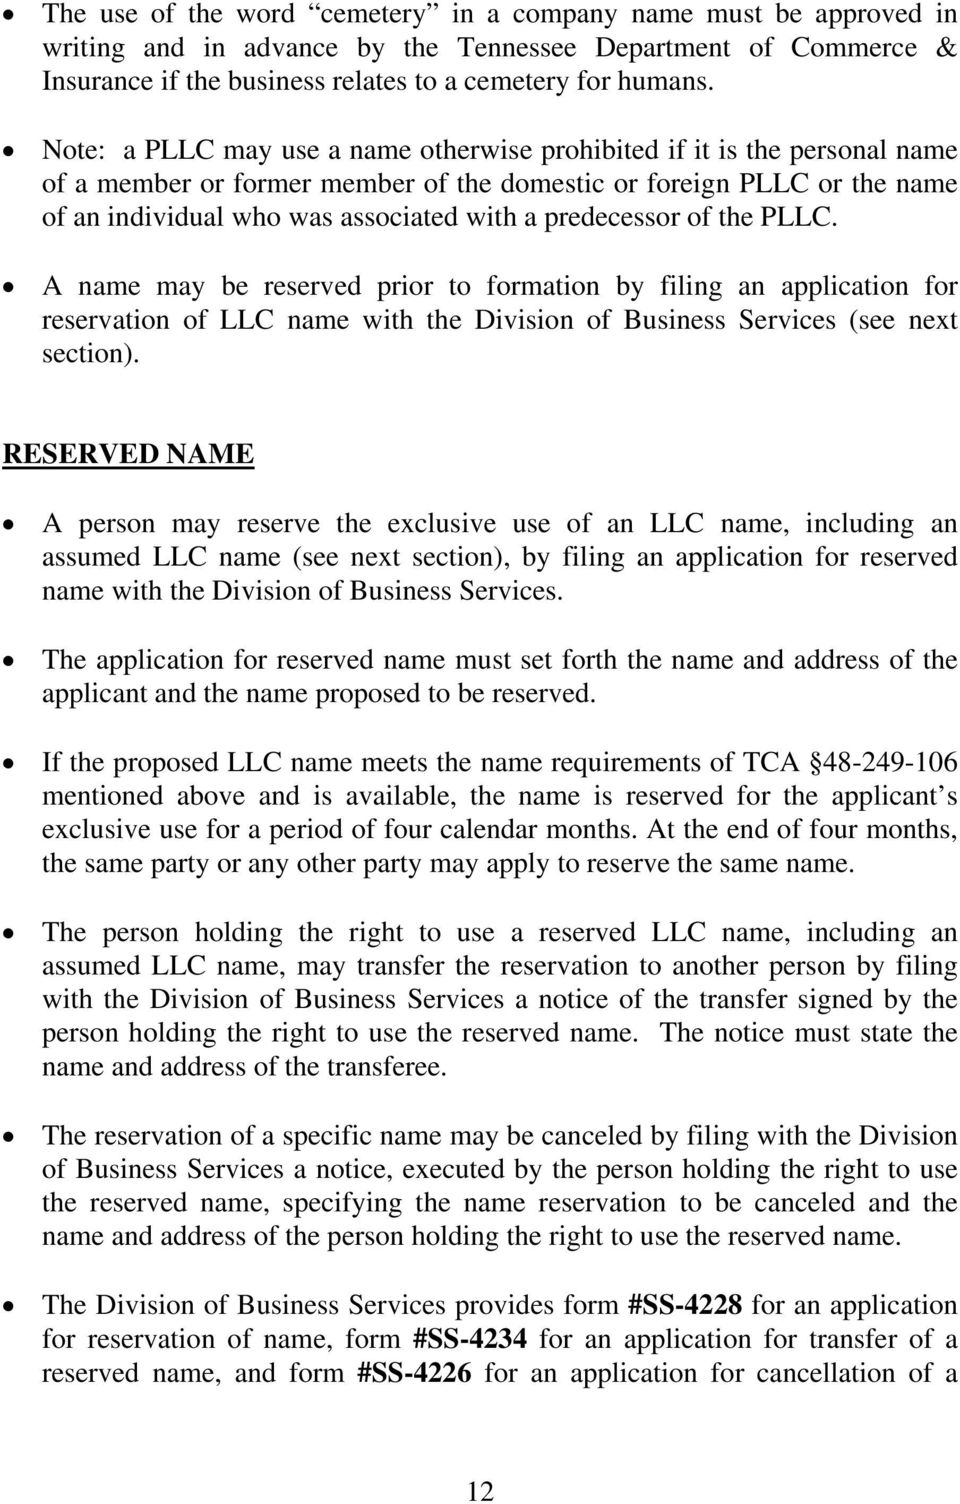 predecessor of the PLLC. A name may be reserved prior to formation by filing an application for reservation of LLC name with the Division of Business Services (see next section).